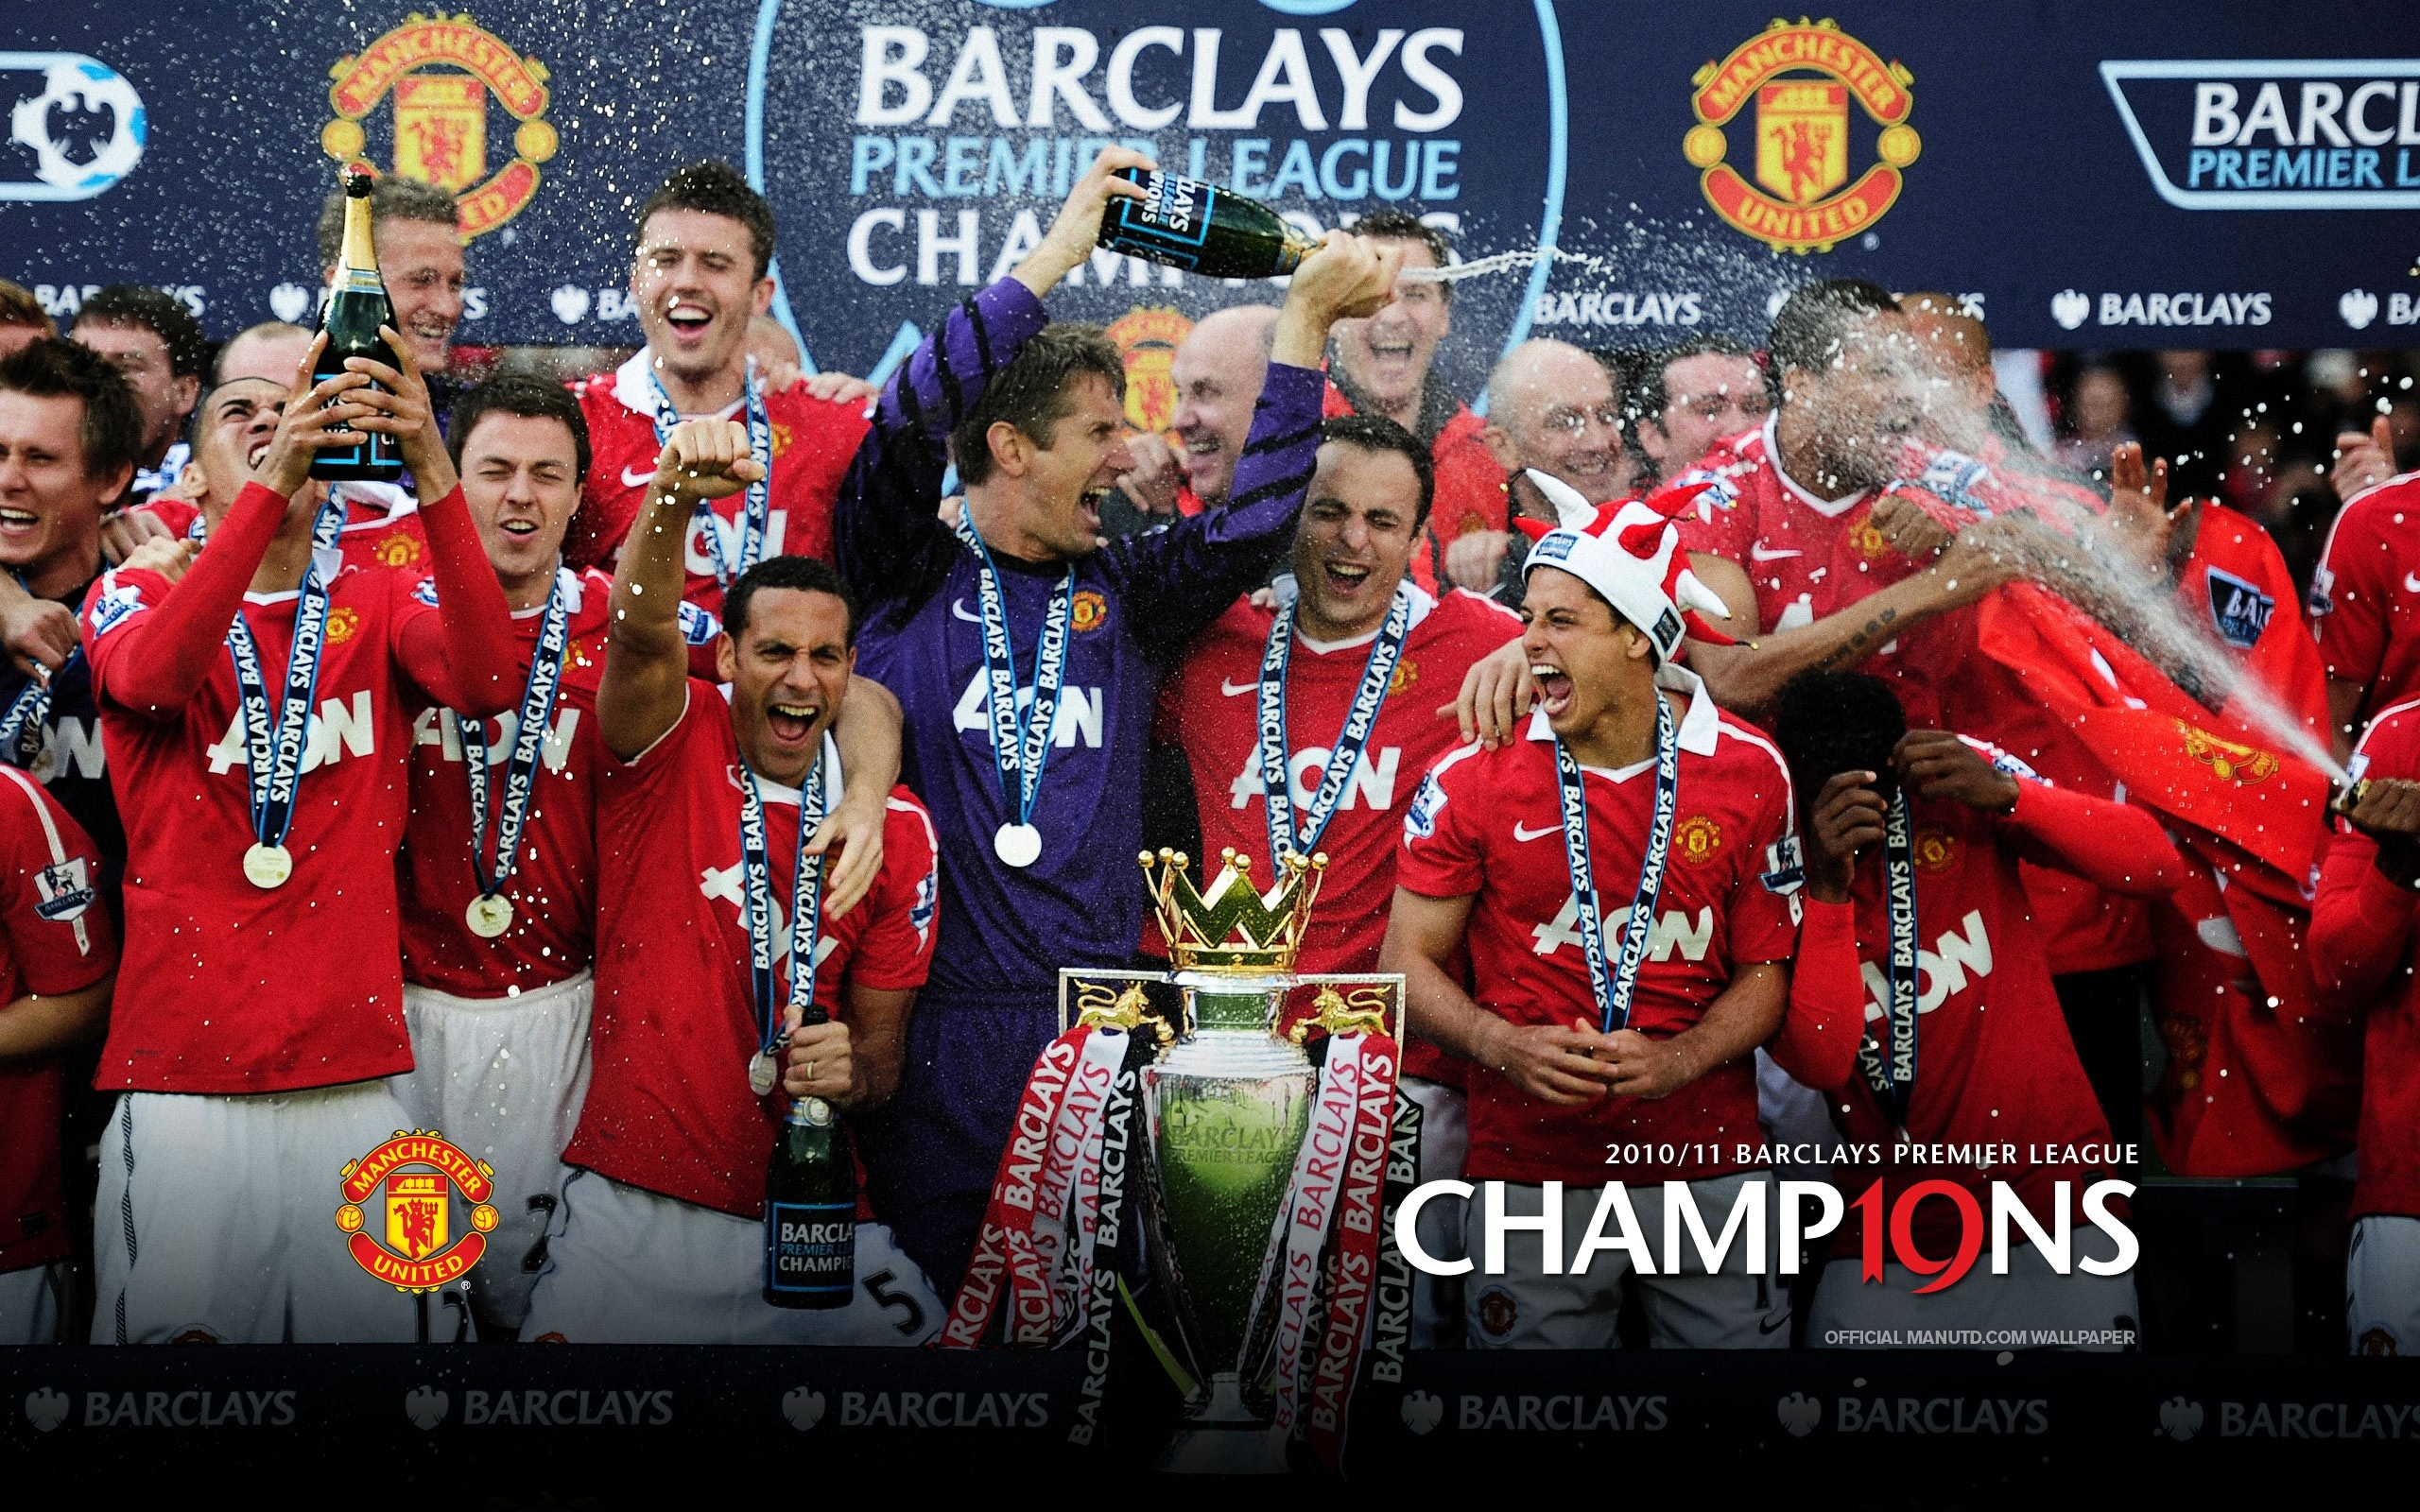 Manchester United celebrate a Premiership title